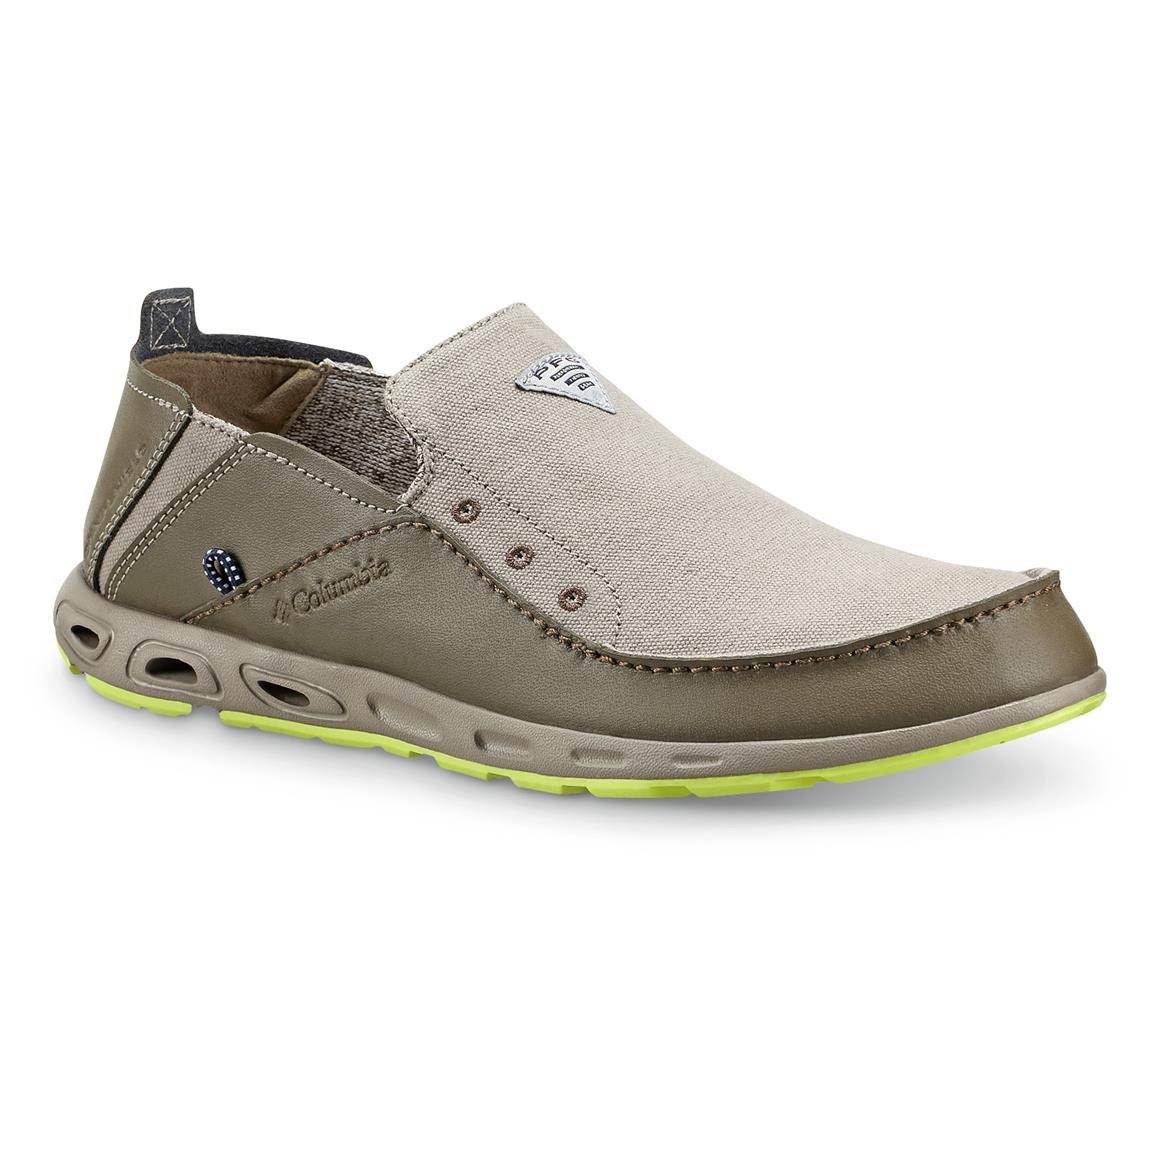 Columbia Men's Bahama Vent PFG Slip-On Boat Shoes, Kettle / Tippet